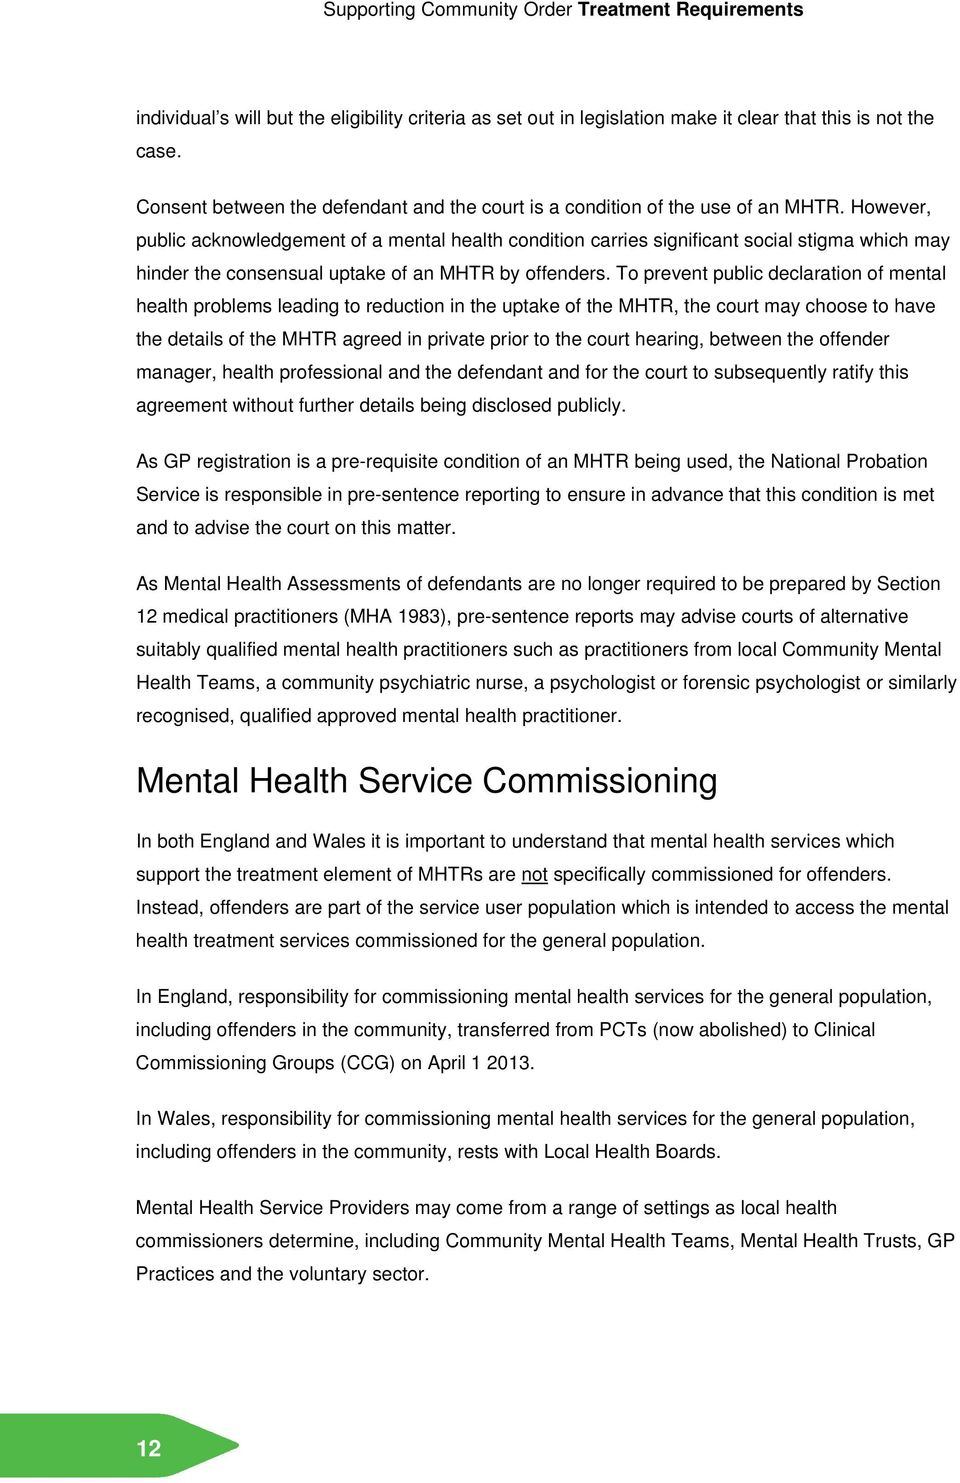 To prevent public declaration of mental health problems leading to reduction in the uptake of the MHTR, the court may choose to have the details of the MHTR agreed in private prior to the court